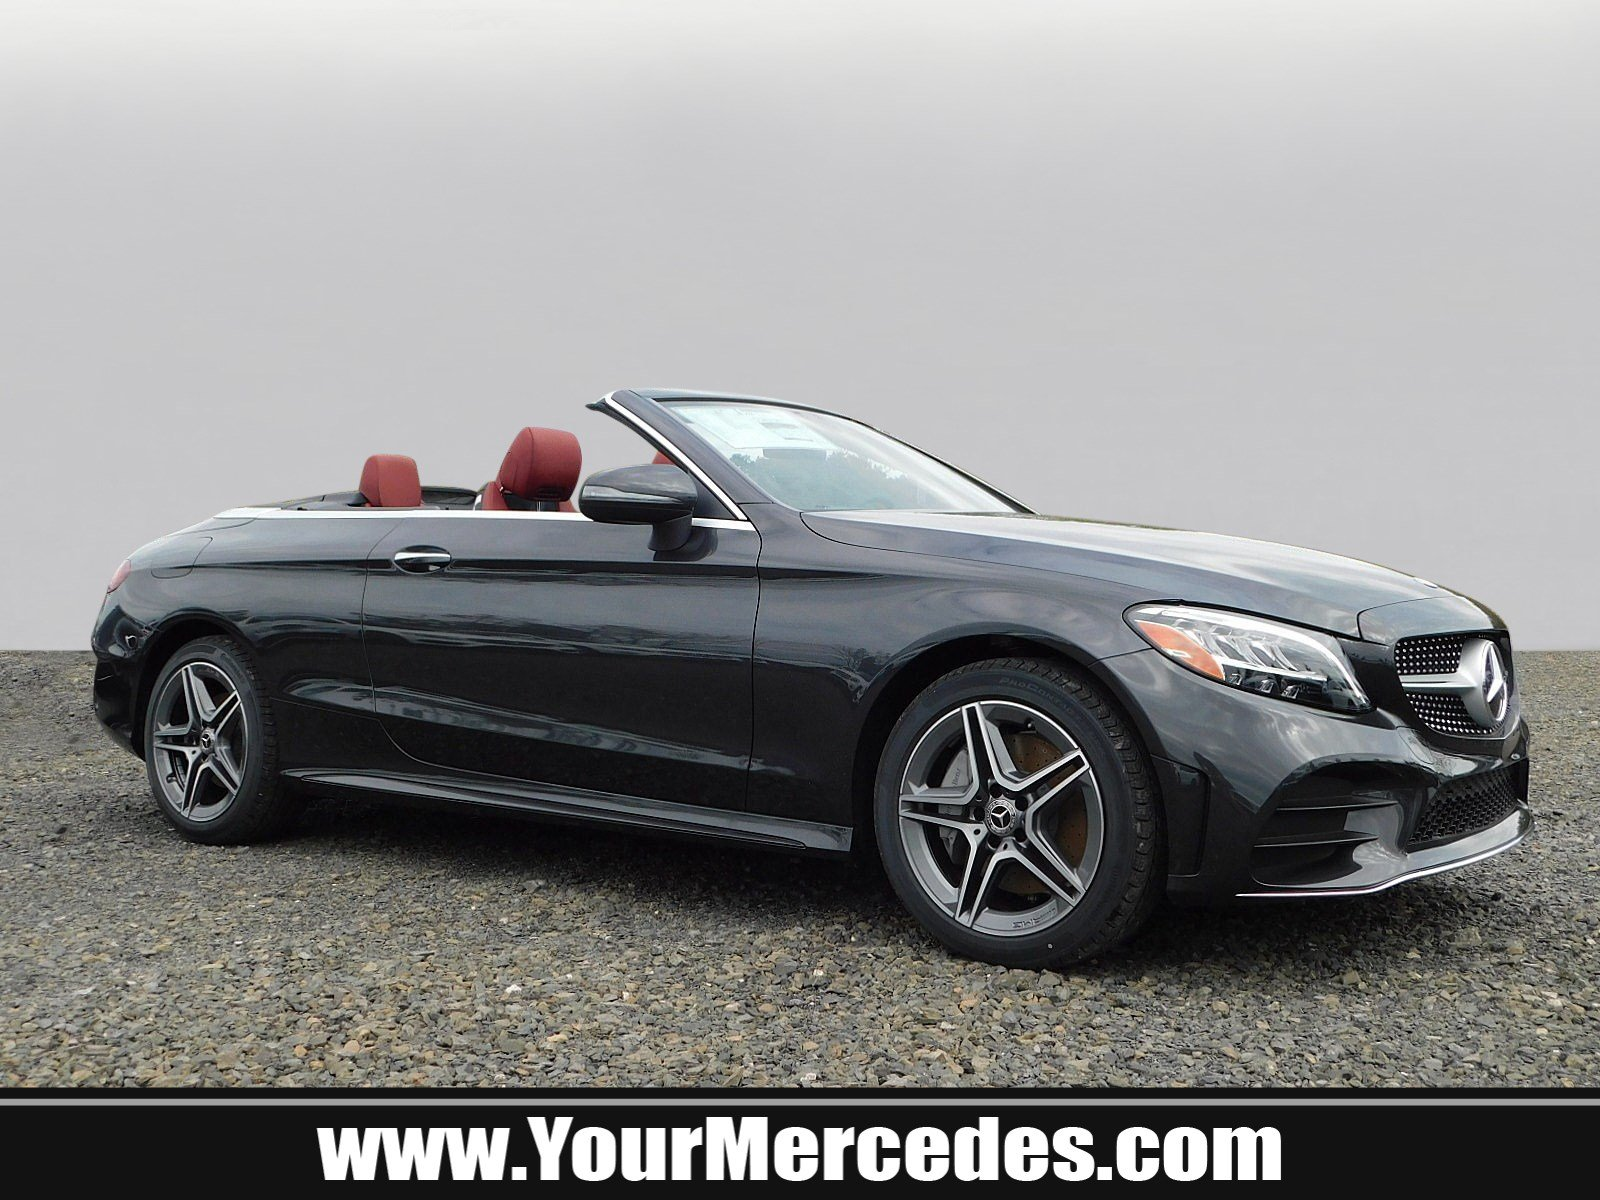 New 2019 Mercedes Benz C Class C 300 CABRIOLET in Fort Washington